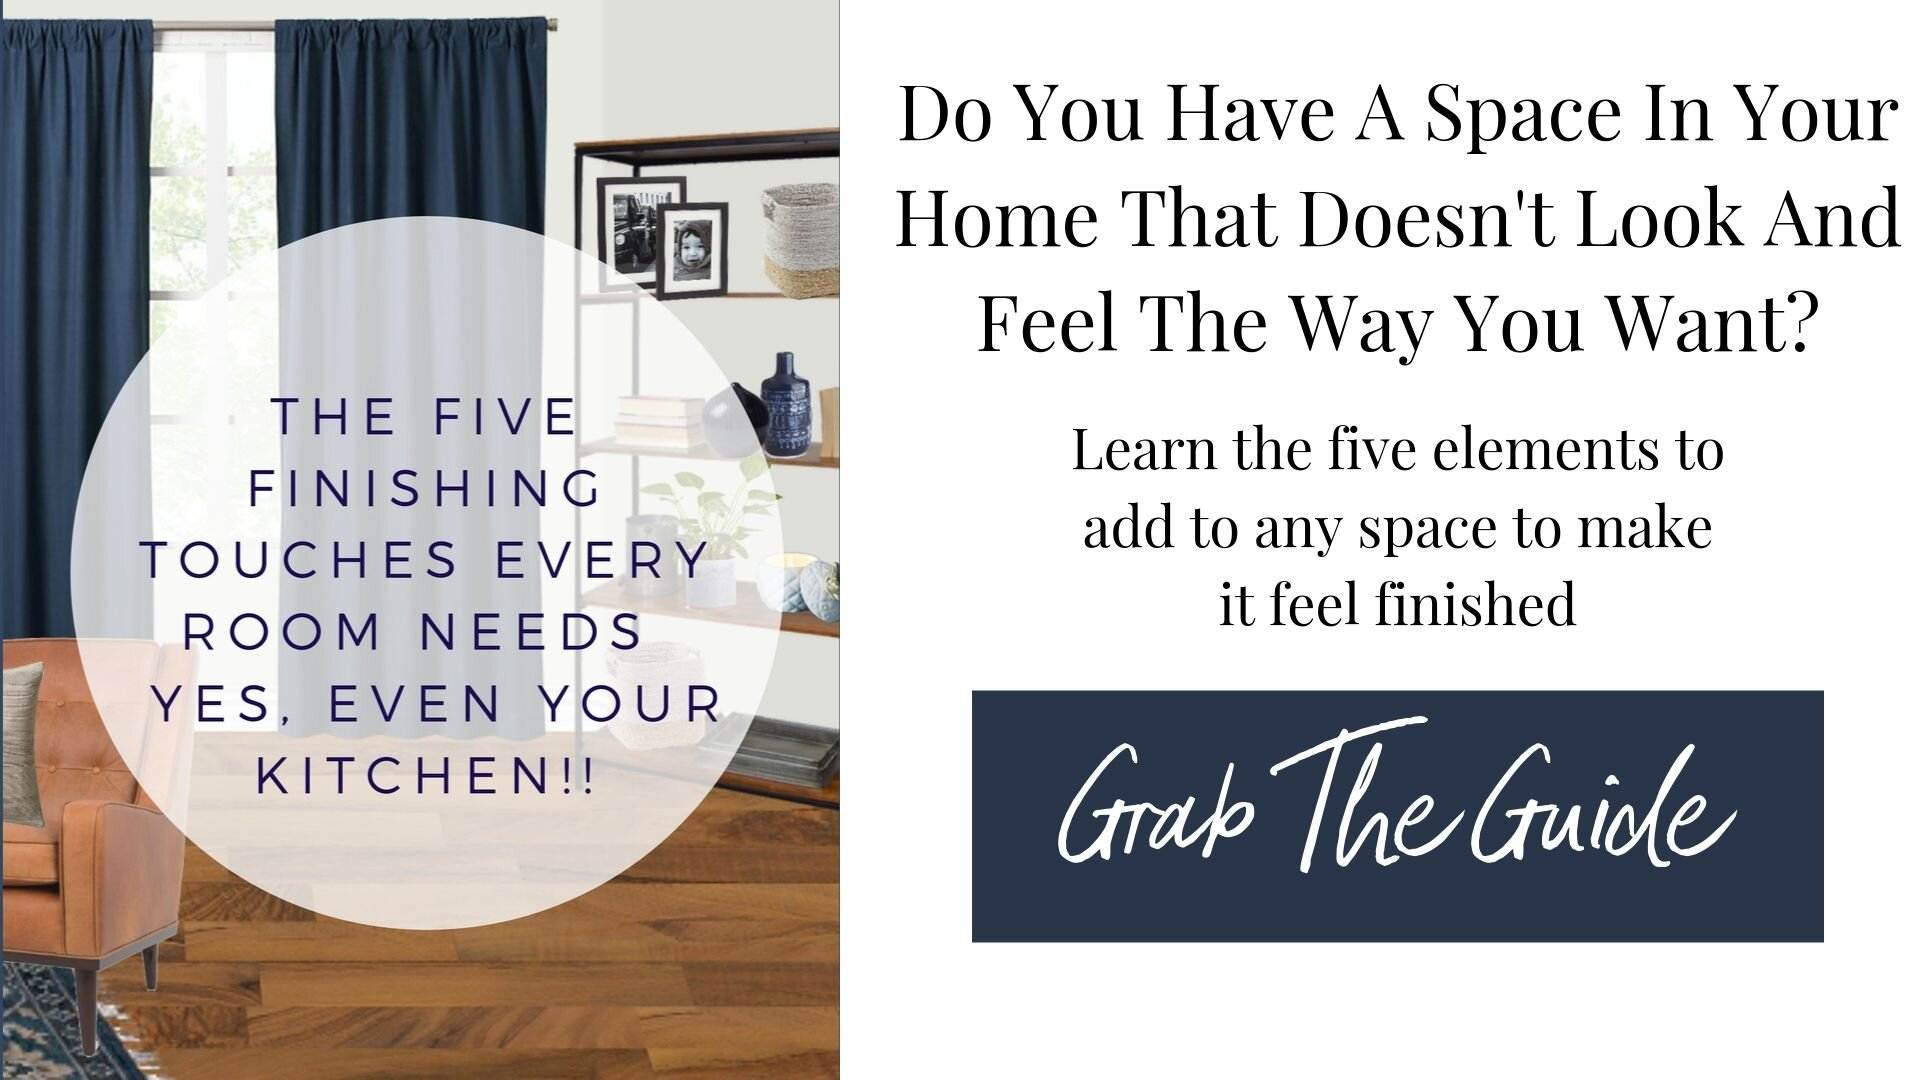 Do You Have A Space In Your Home That Doesn't Look And Feel The Way You Want_.jpg